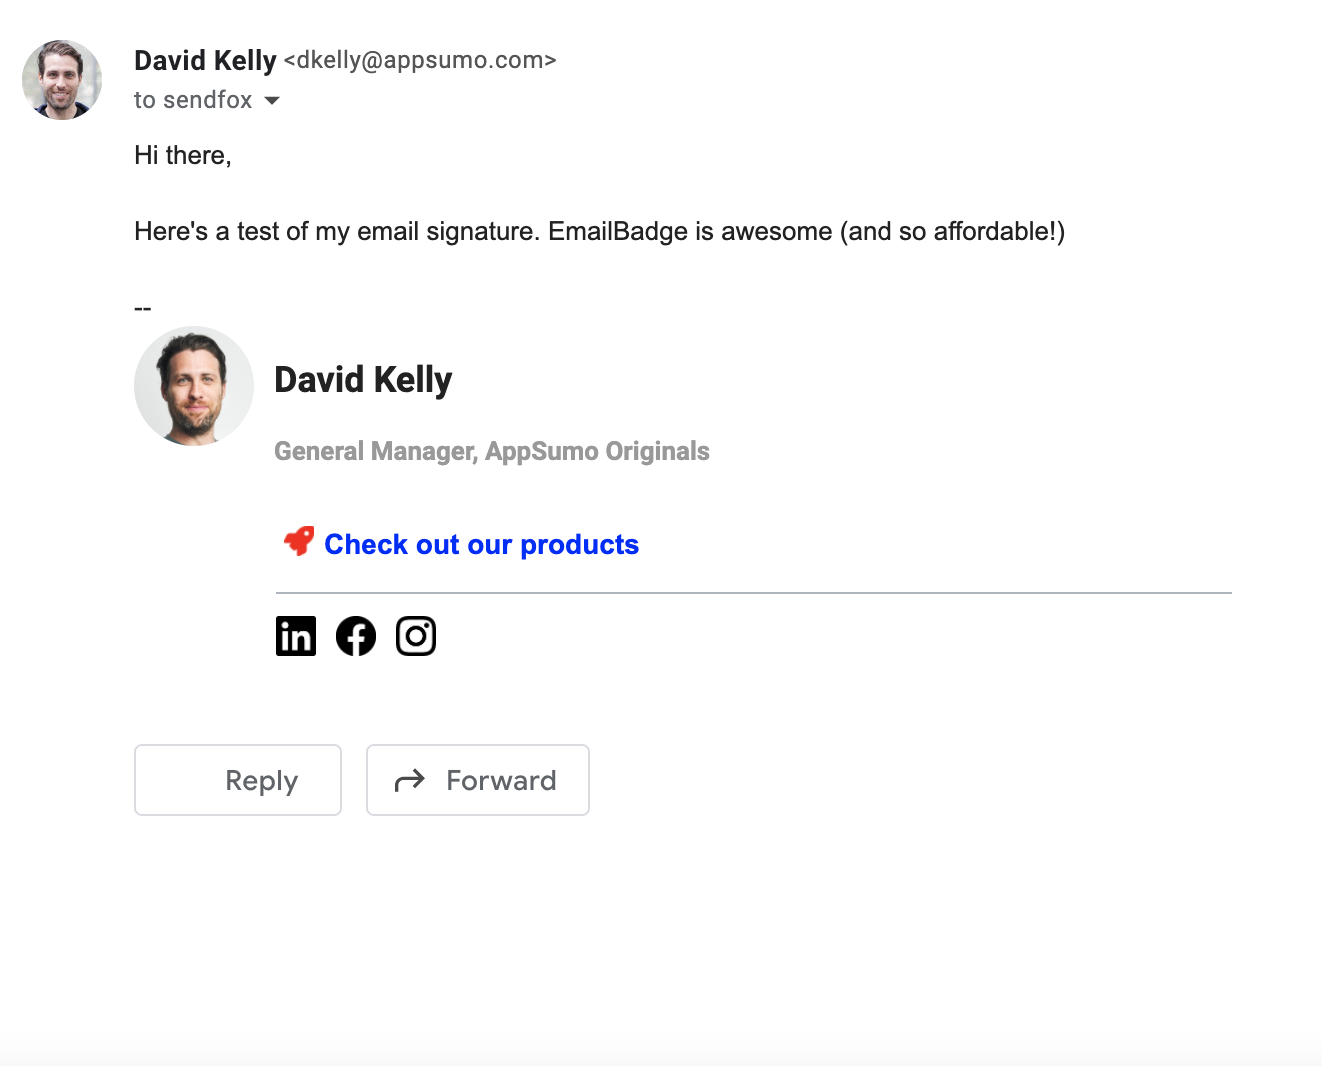 Preview email with email signature